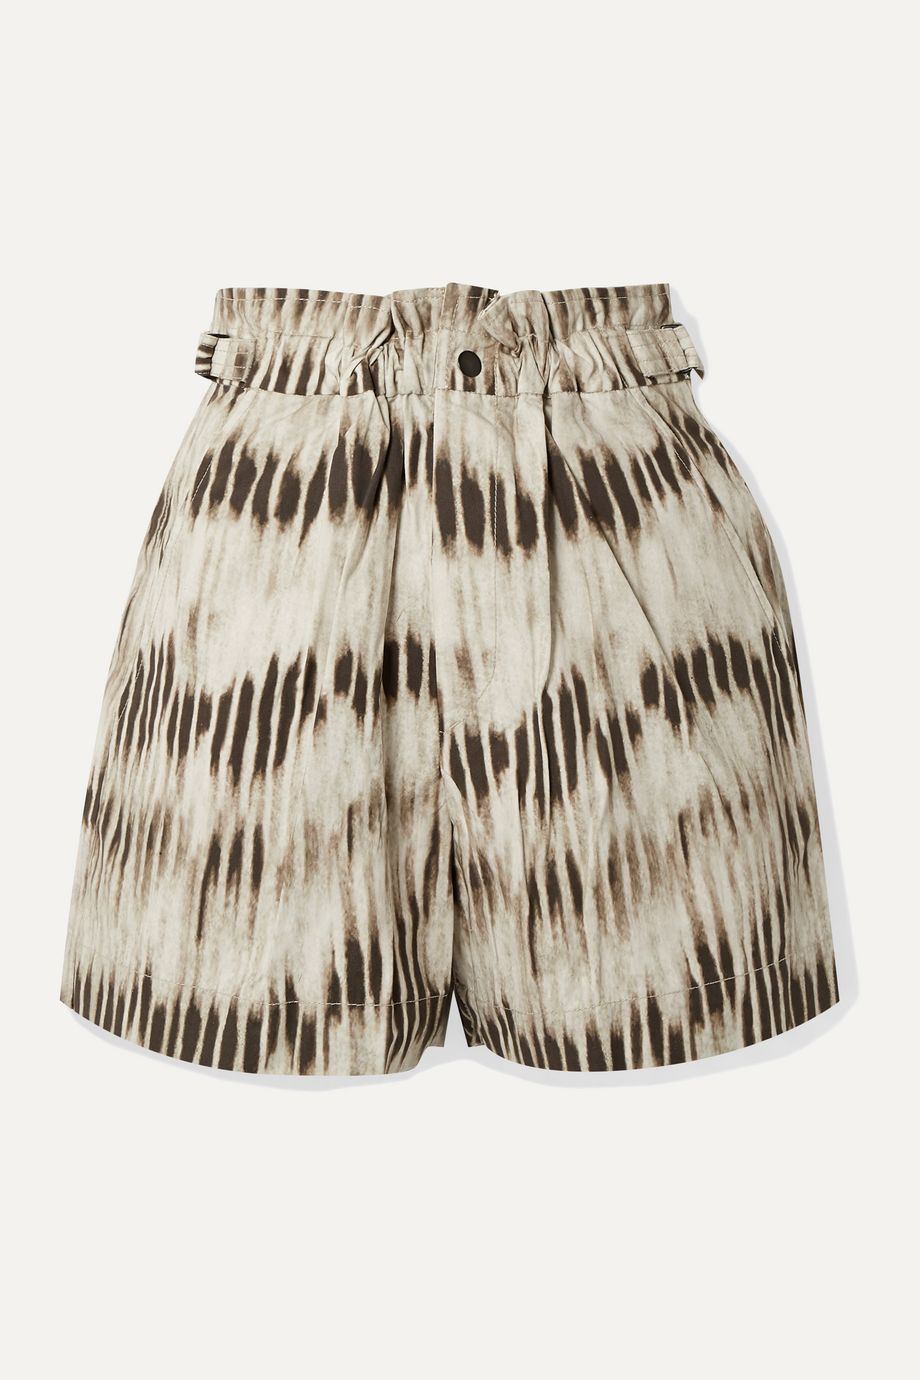 Isabel Marant Ilirya printed denim shorts